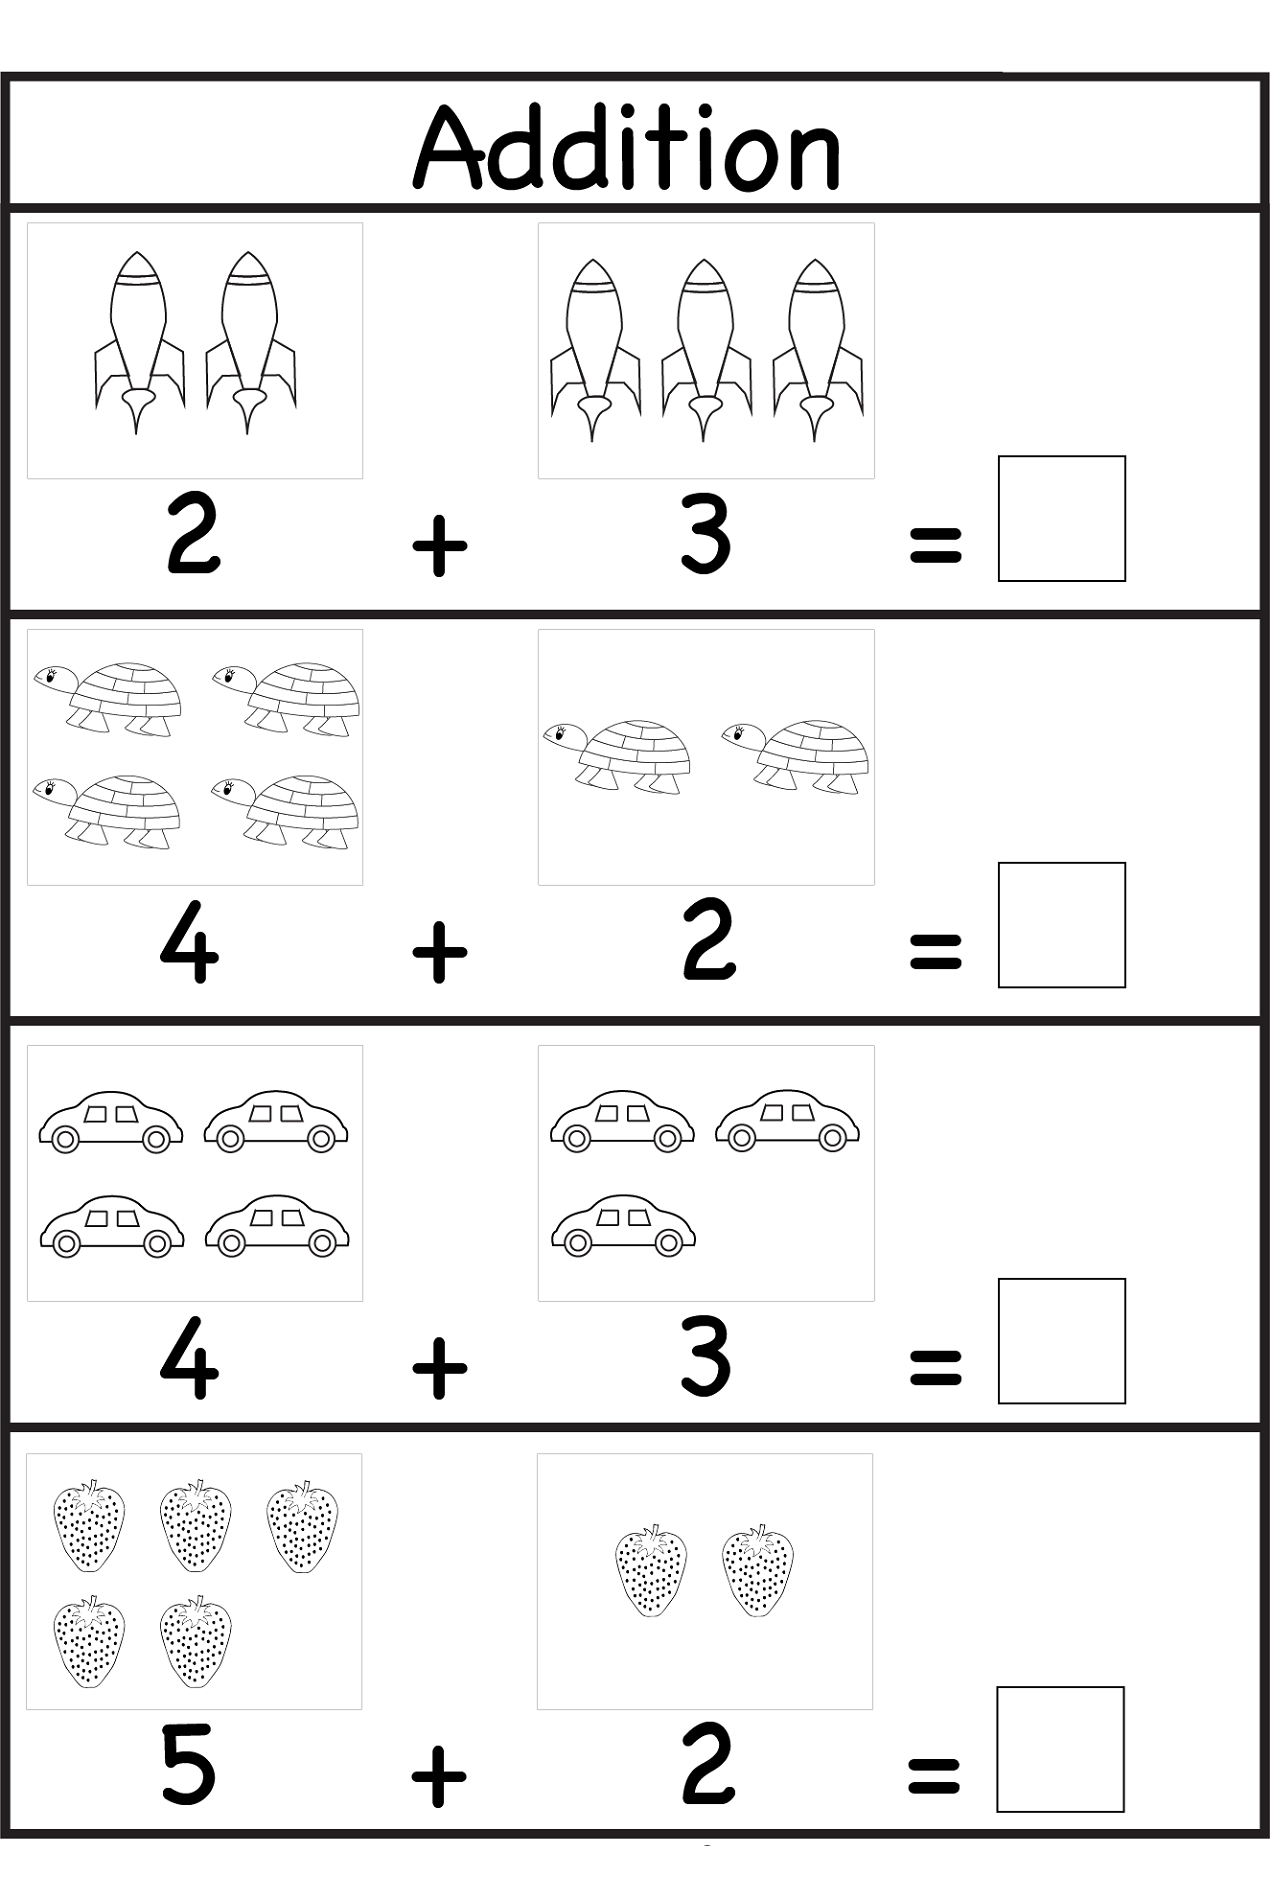 3 Year Old Worksheets